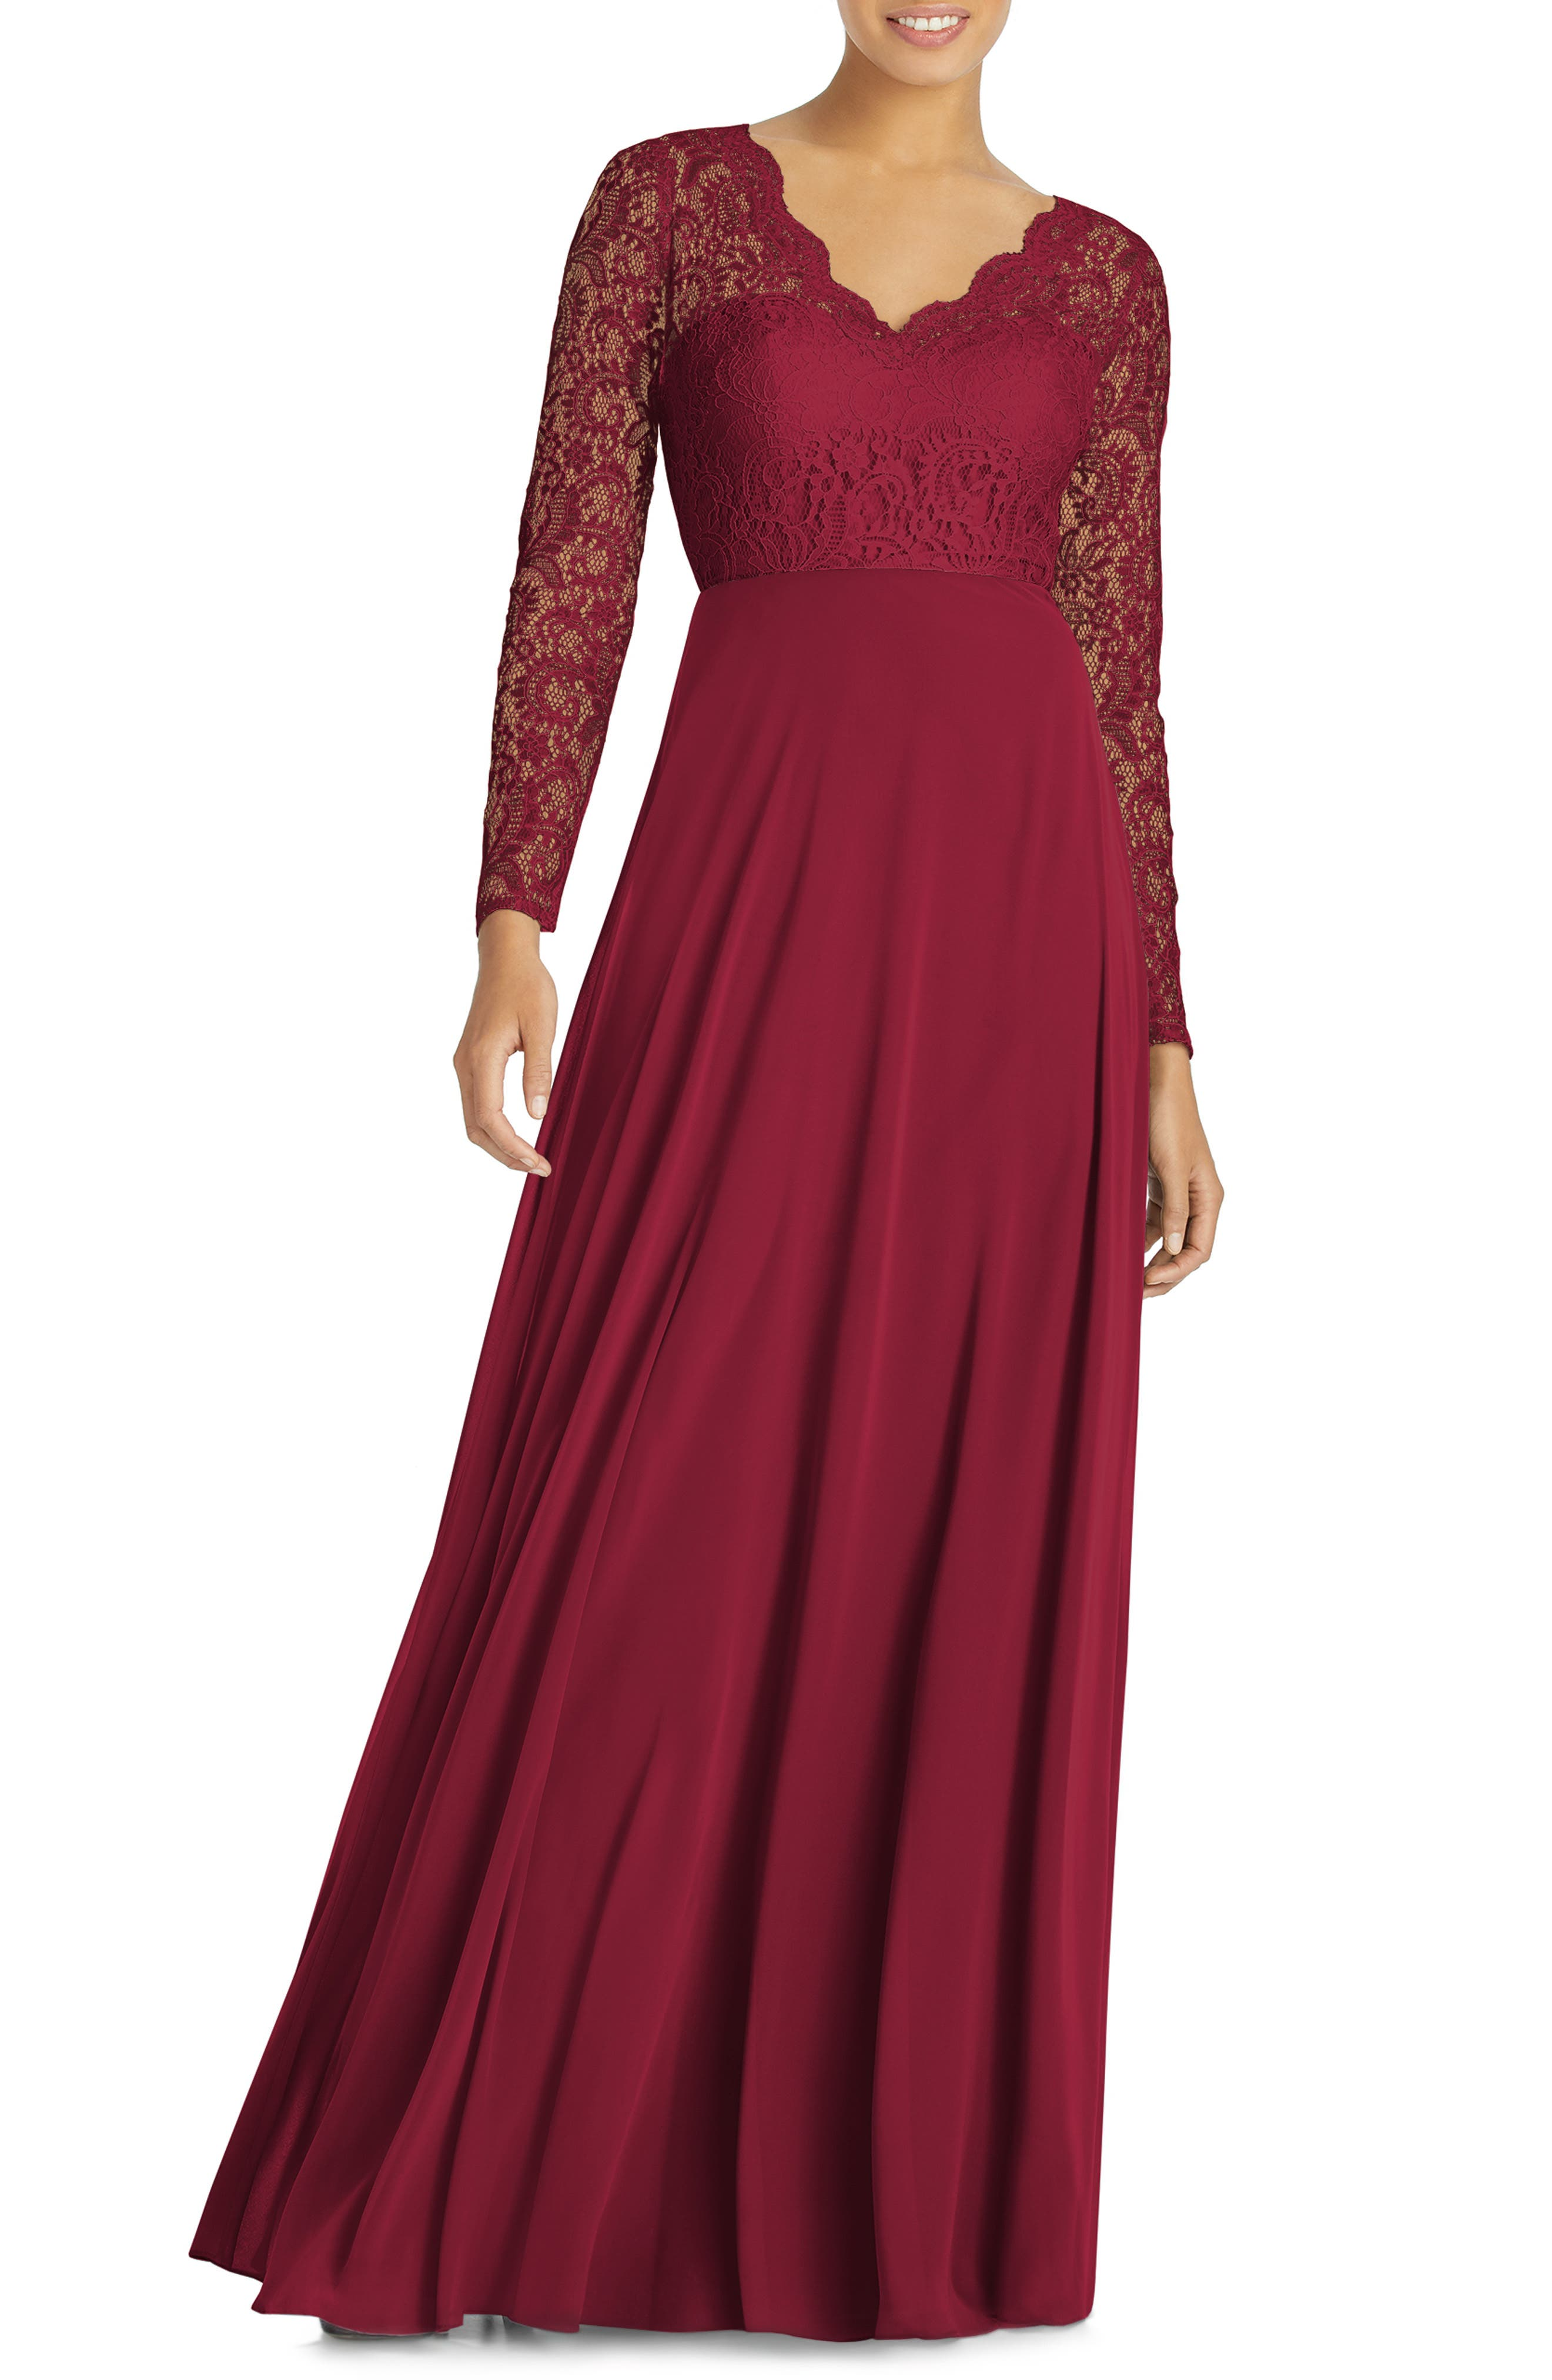 Dessy Collection Long Sleeve Lace & Chiffon Gown, Burgundy